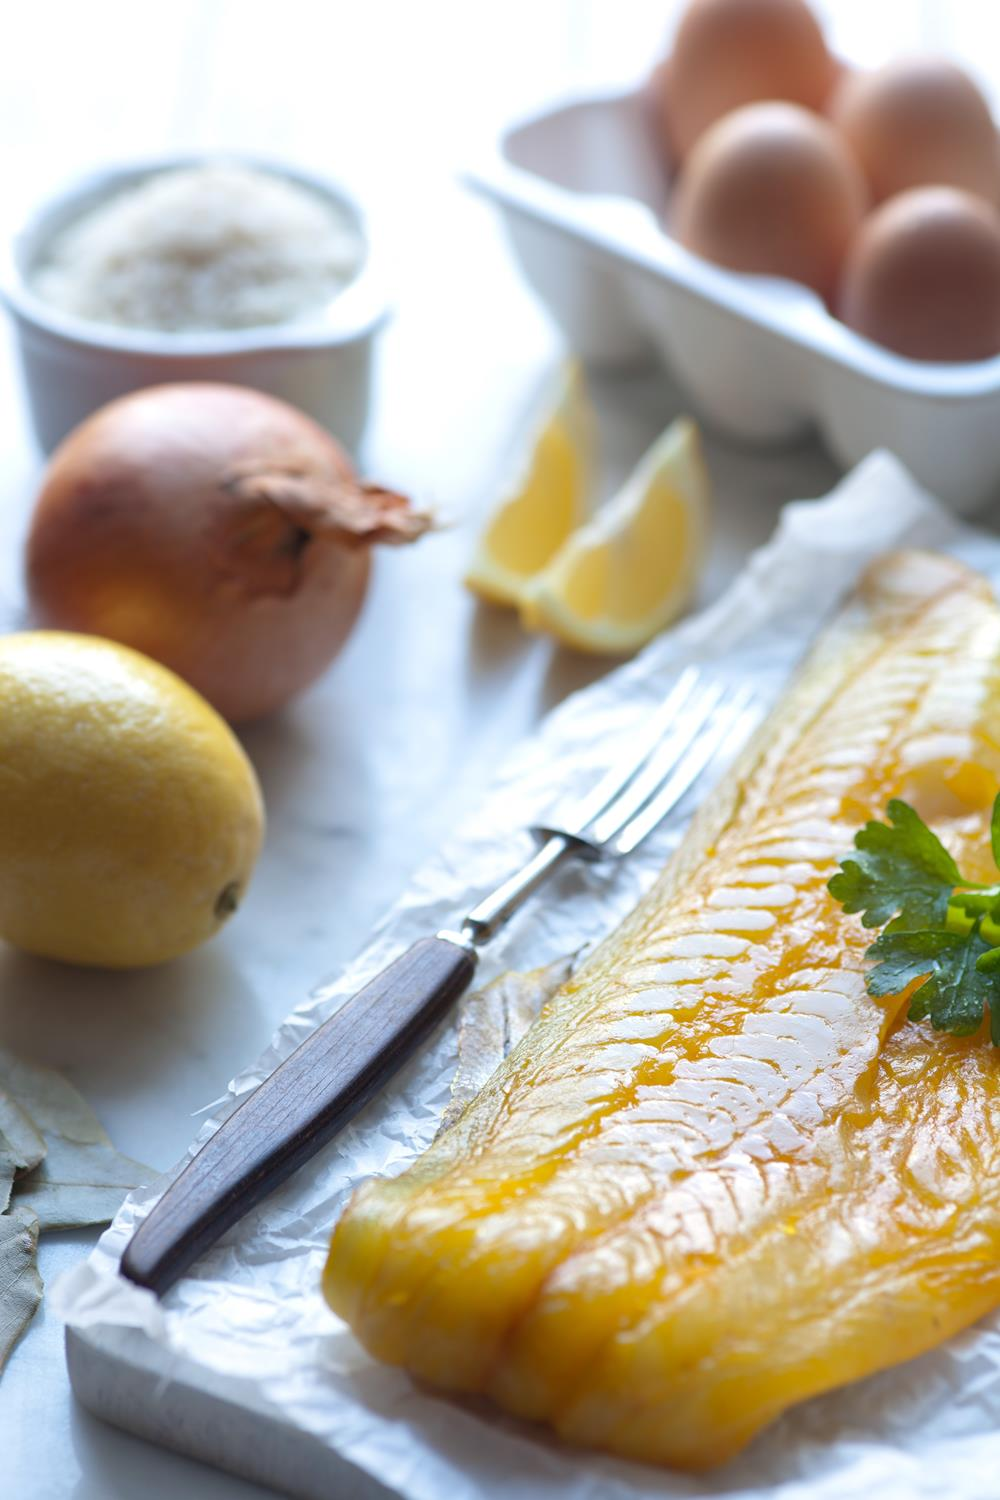 Online Personal Trainer Breakfast Recipes - Smoked Haddock & Eggs.jpg